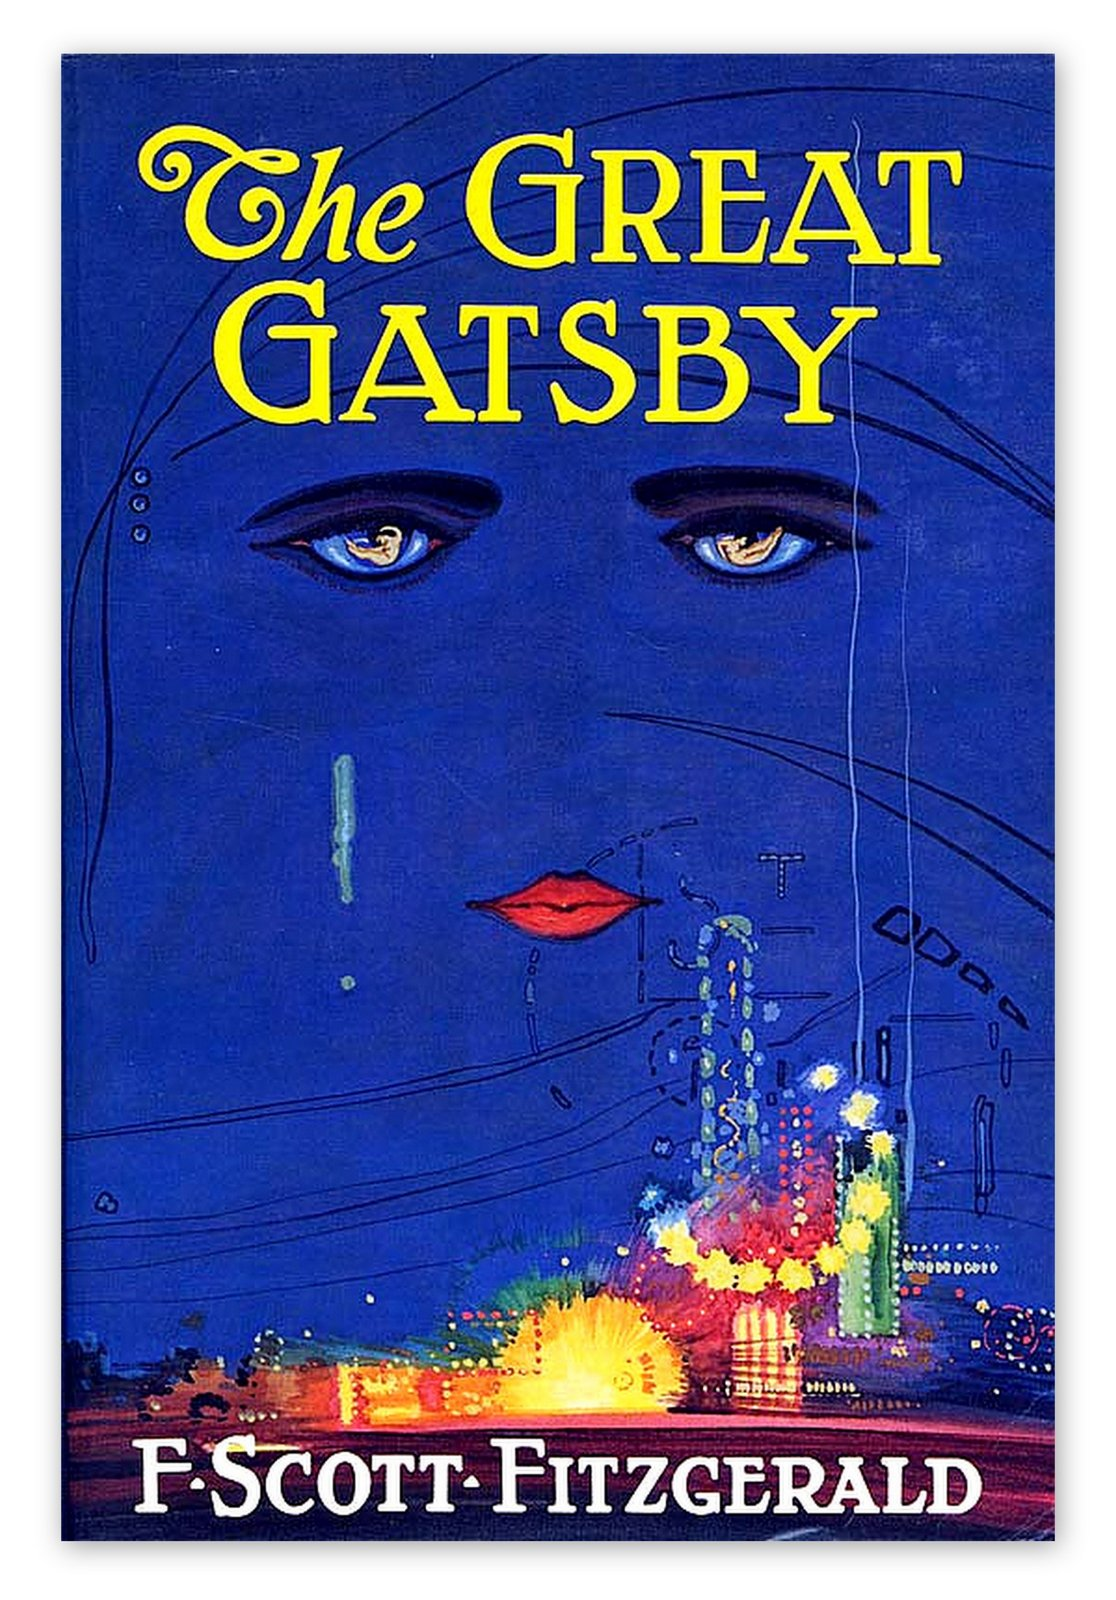 the dream of wealth in the novel great gatsby On its first publication in 1925, the great gatsby was largely dismissed as a light satire on jazz age follies today, it is acknowledged as a masterpiece: a love story, an exploration of the american dream and arguably the greatest american novel of the 20th century.